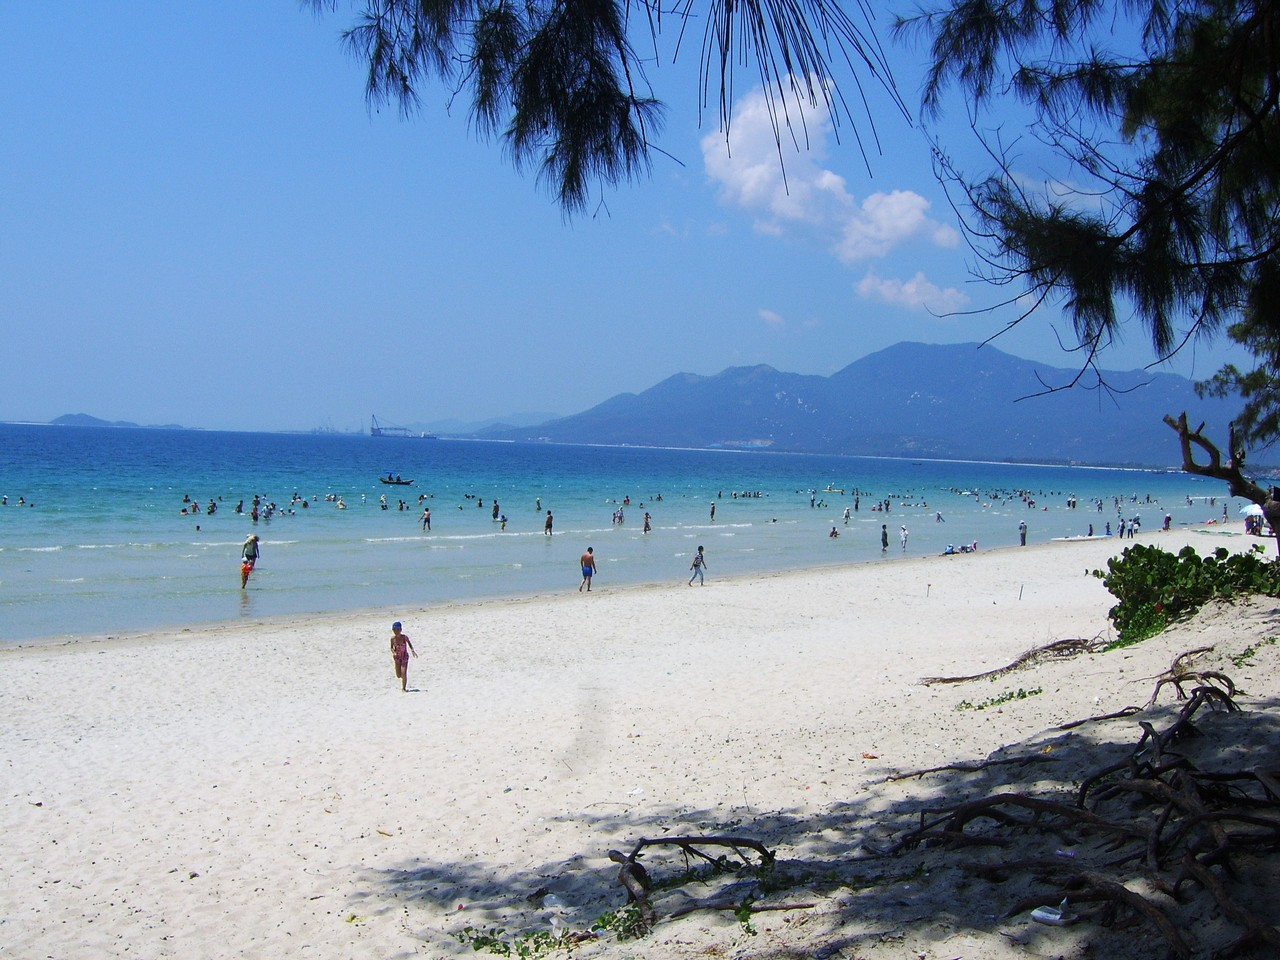 Dai Lanh beach (Khanh Hoa Province, Middle of Vietnam) - Photo: Internet